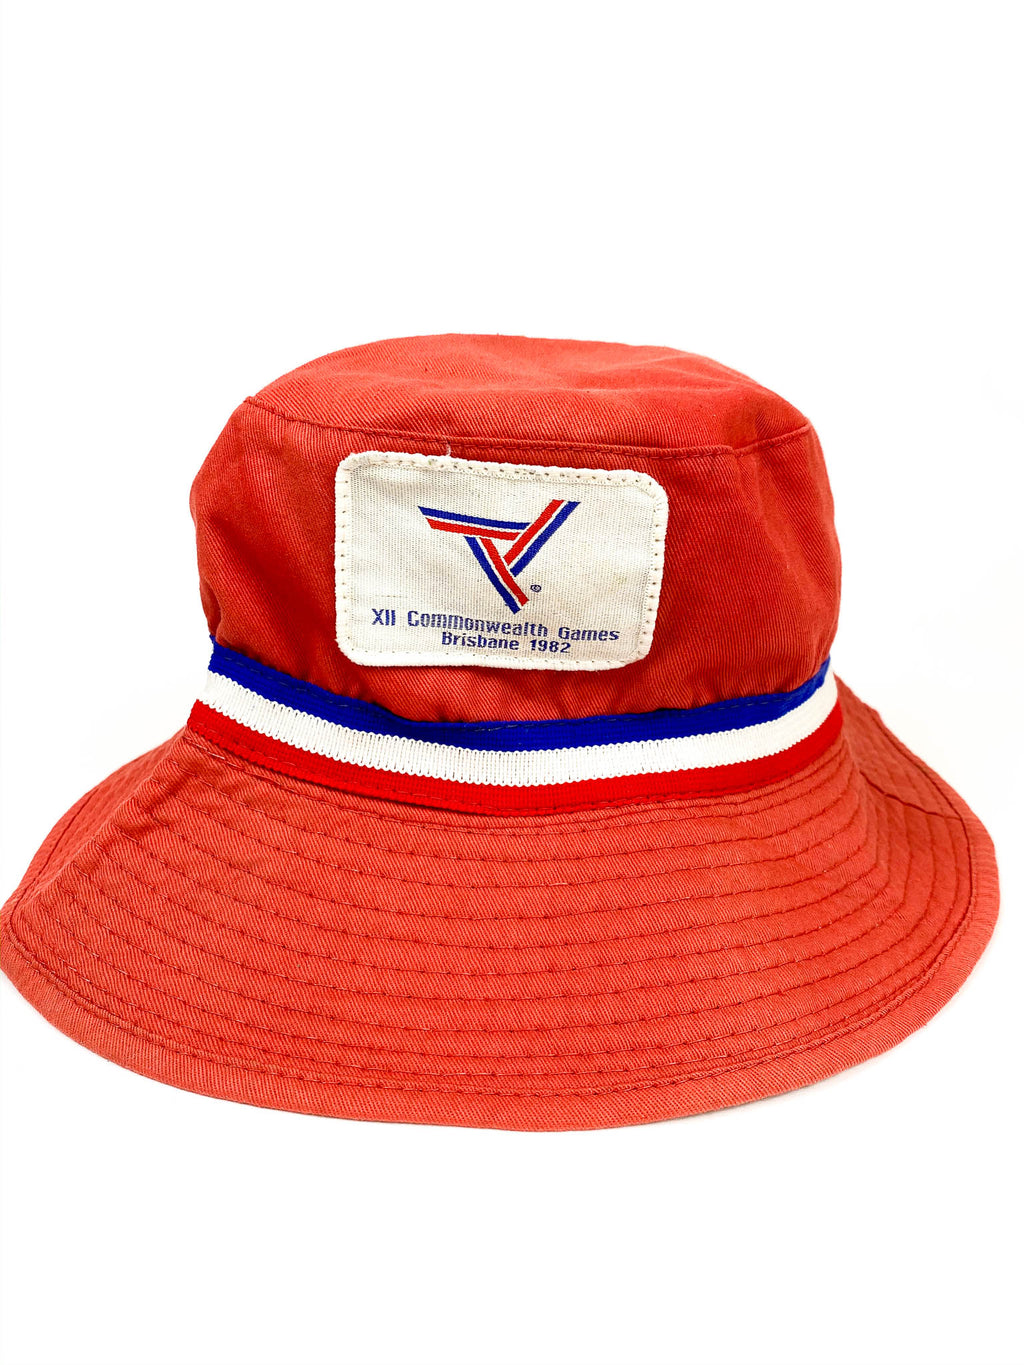 1982 Commonwealth Games Bucket Hat / S